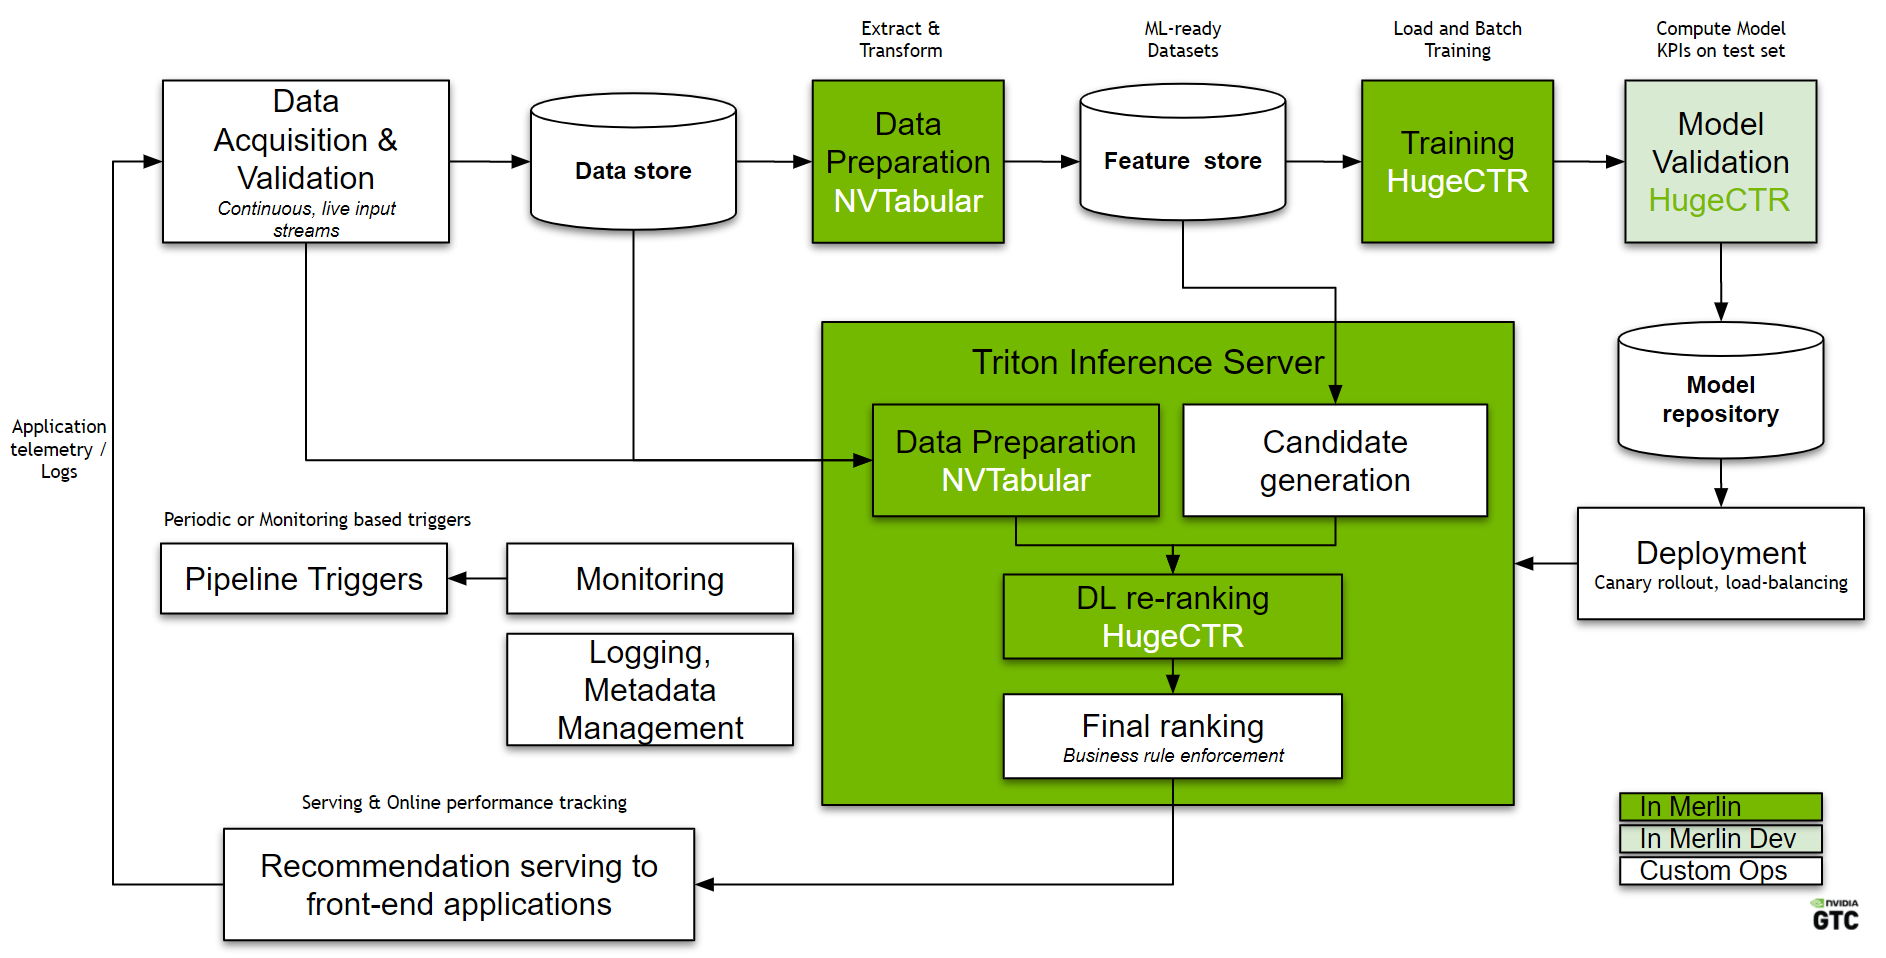 Figure shows a high level overview of an MLOps pipeline for a recommender system built with NVIDIA Merlin components. It includes all the components from Data acquisition & validation, data preparation, training, model validation, deployment, Monitoring, logging and pipeline triggers.